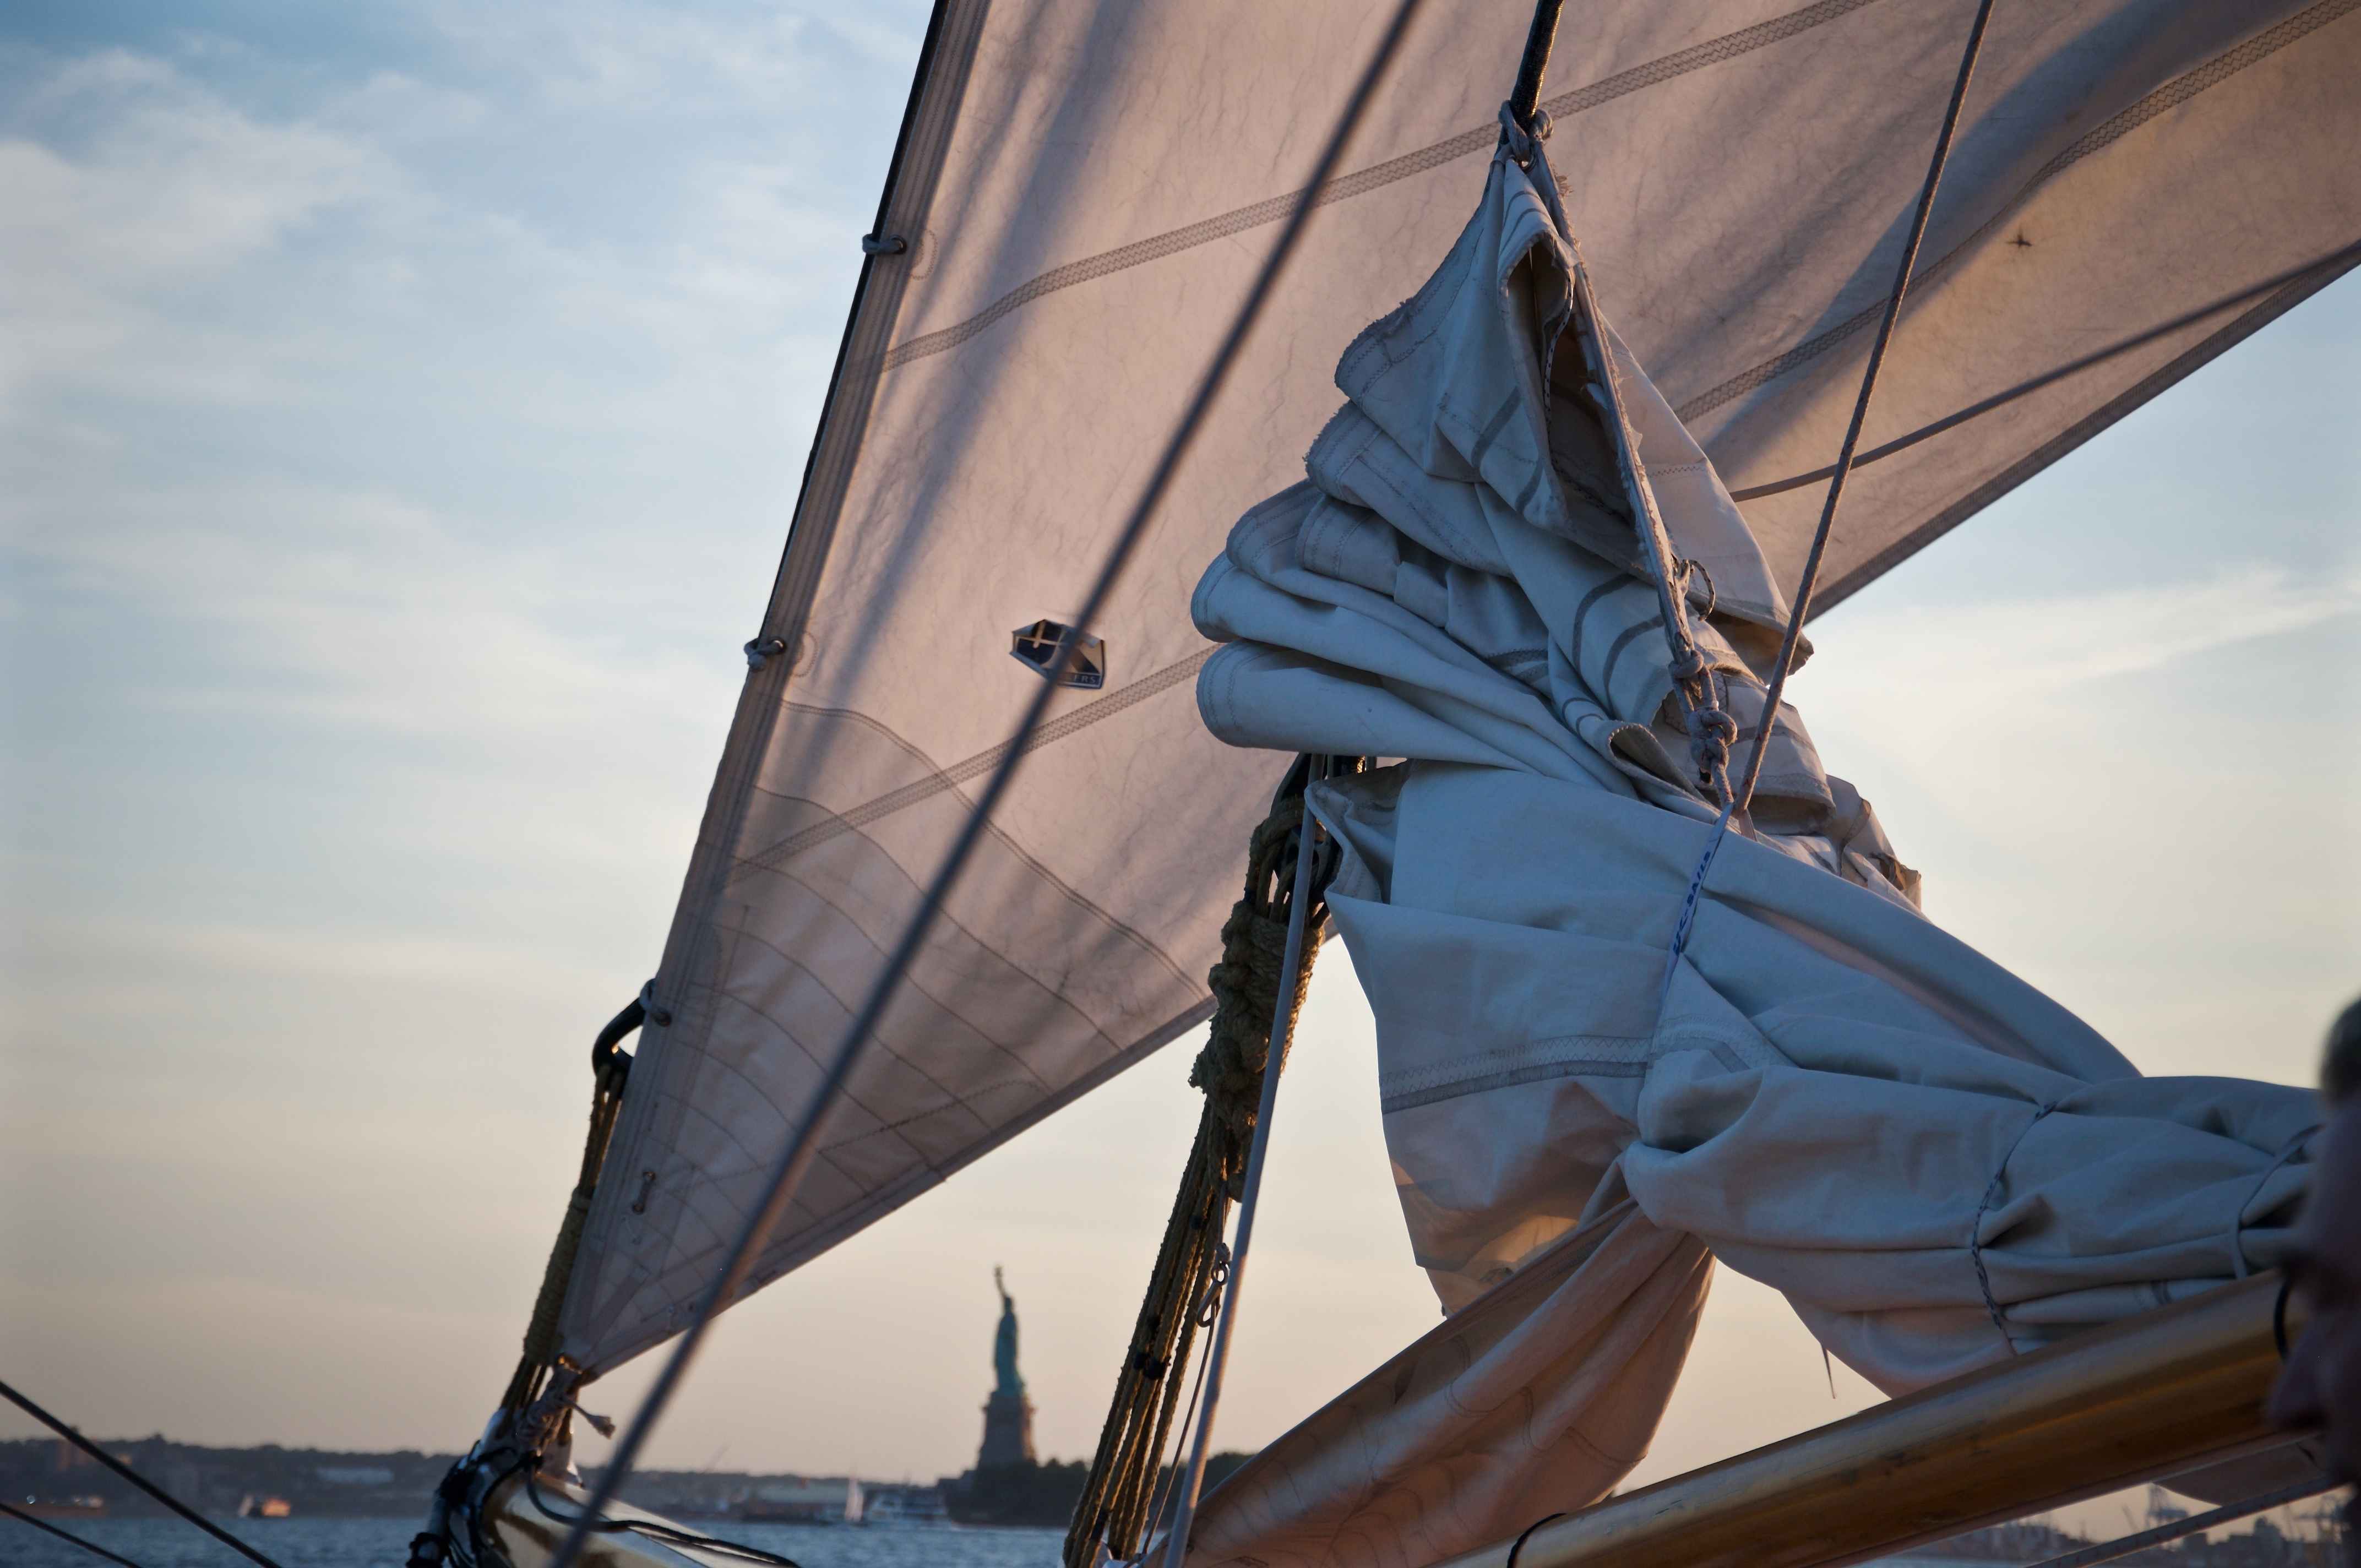 On Board, Ship, Travel, Journey, Cloth, HQ Photo